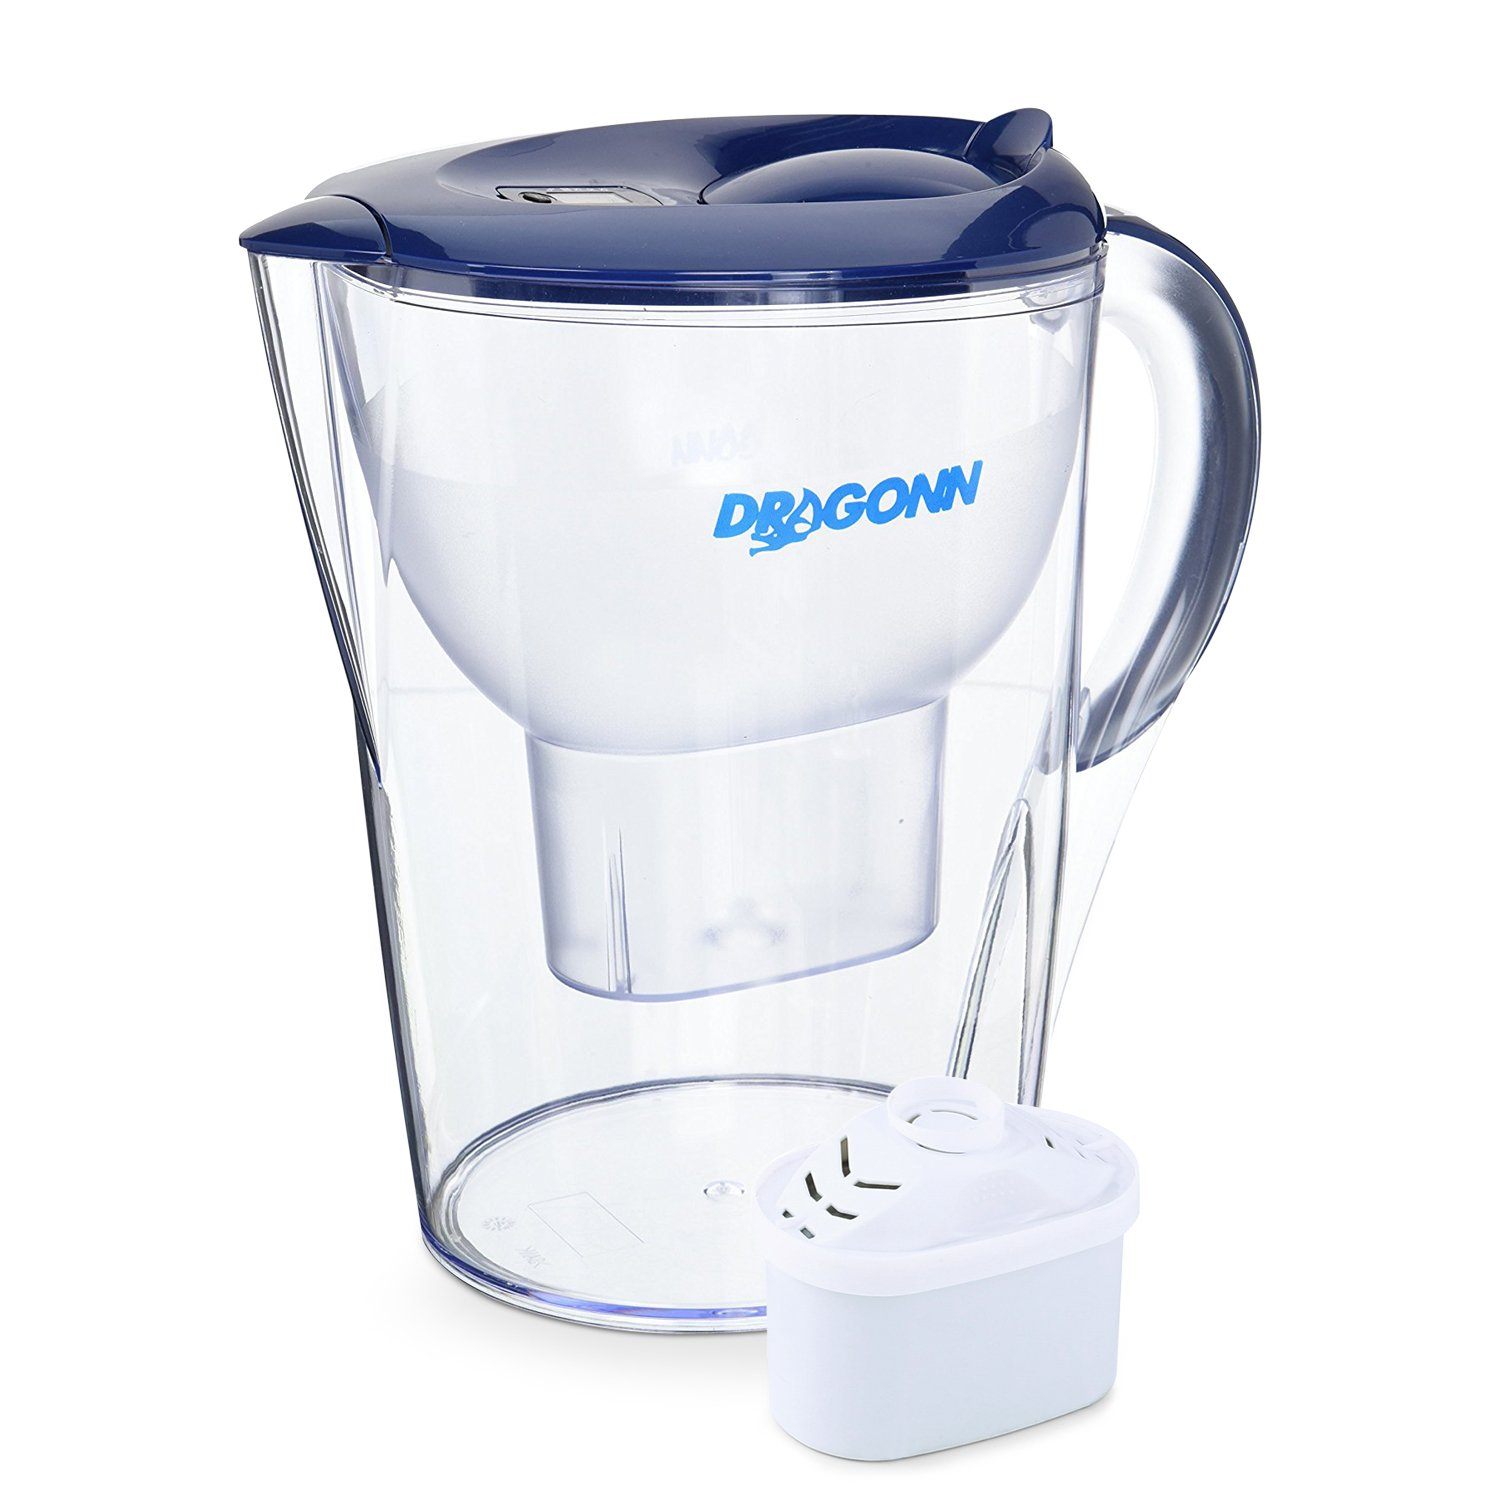 DRAGONN pH Restore Alkaline Water Pitcher - 3.5 liters, Free Filter, 7 Stage Filteration System LED Timer, Removes Lead, Chlorine, Copper More, PH 8.5-9.5 Enhanced 2018 Model